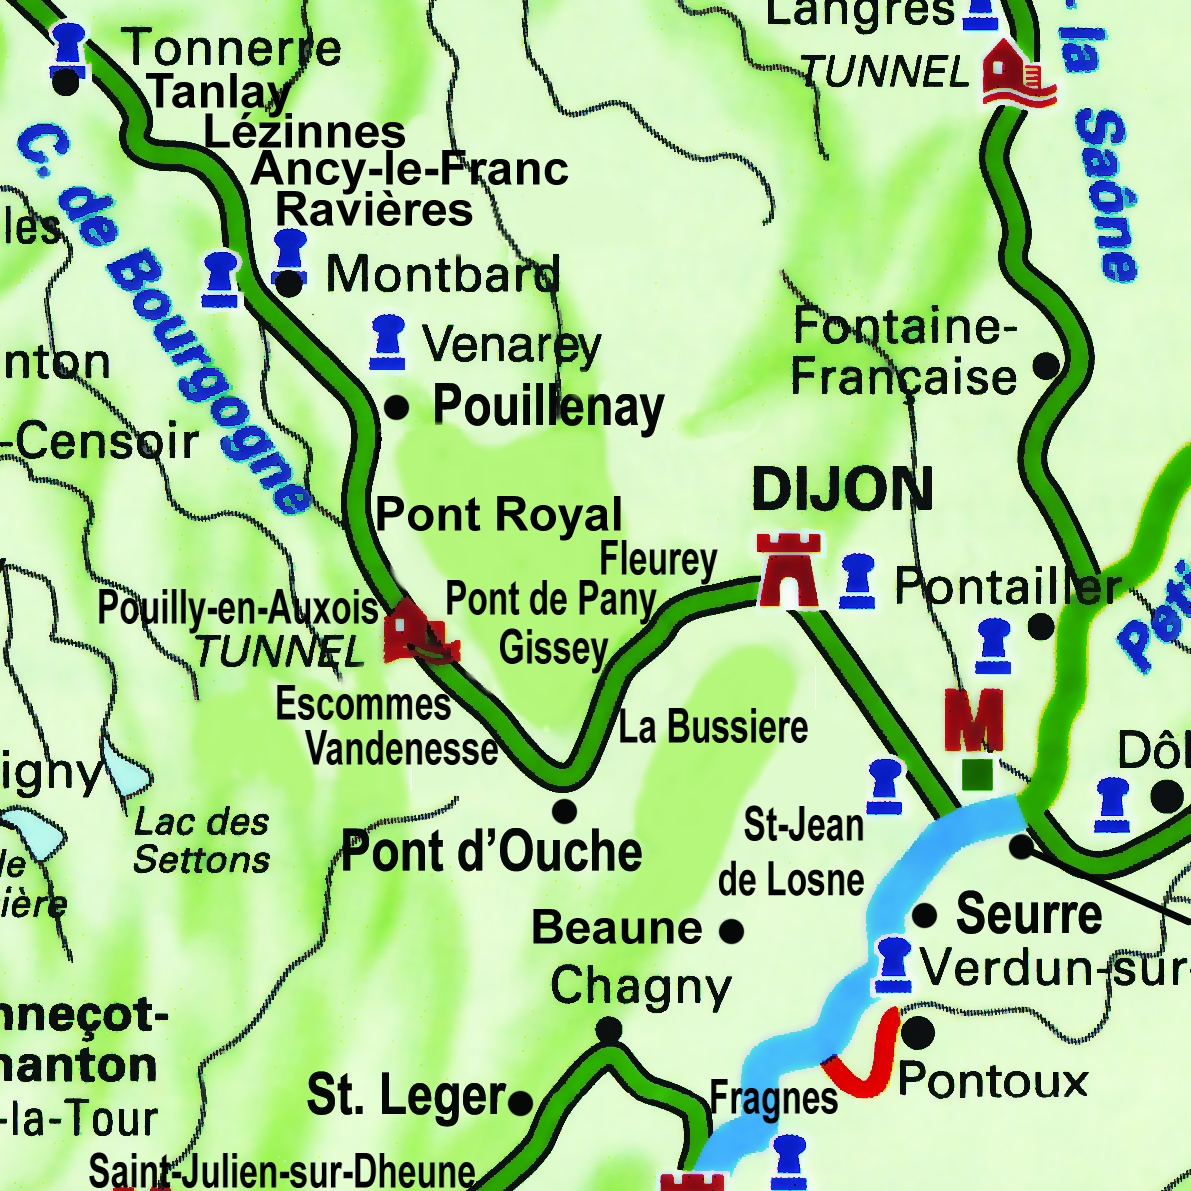 Rendez-vous' route through Southern Burgundy, from Fleurey sur Ouche to Vandenesse en Auxois on the Canal de Bourgogne.